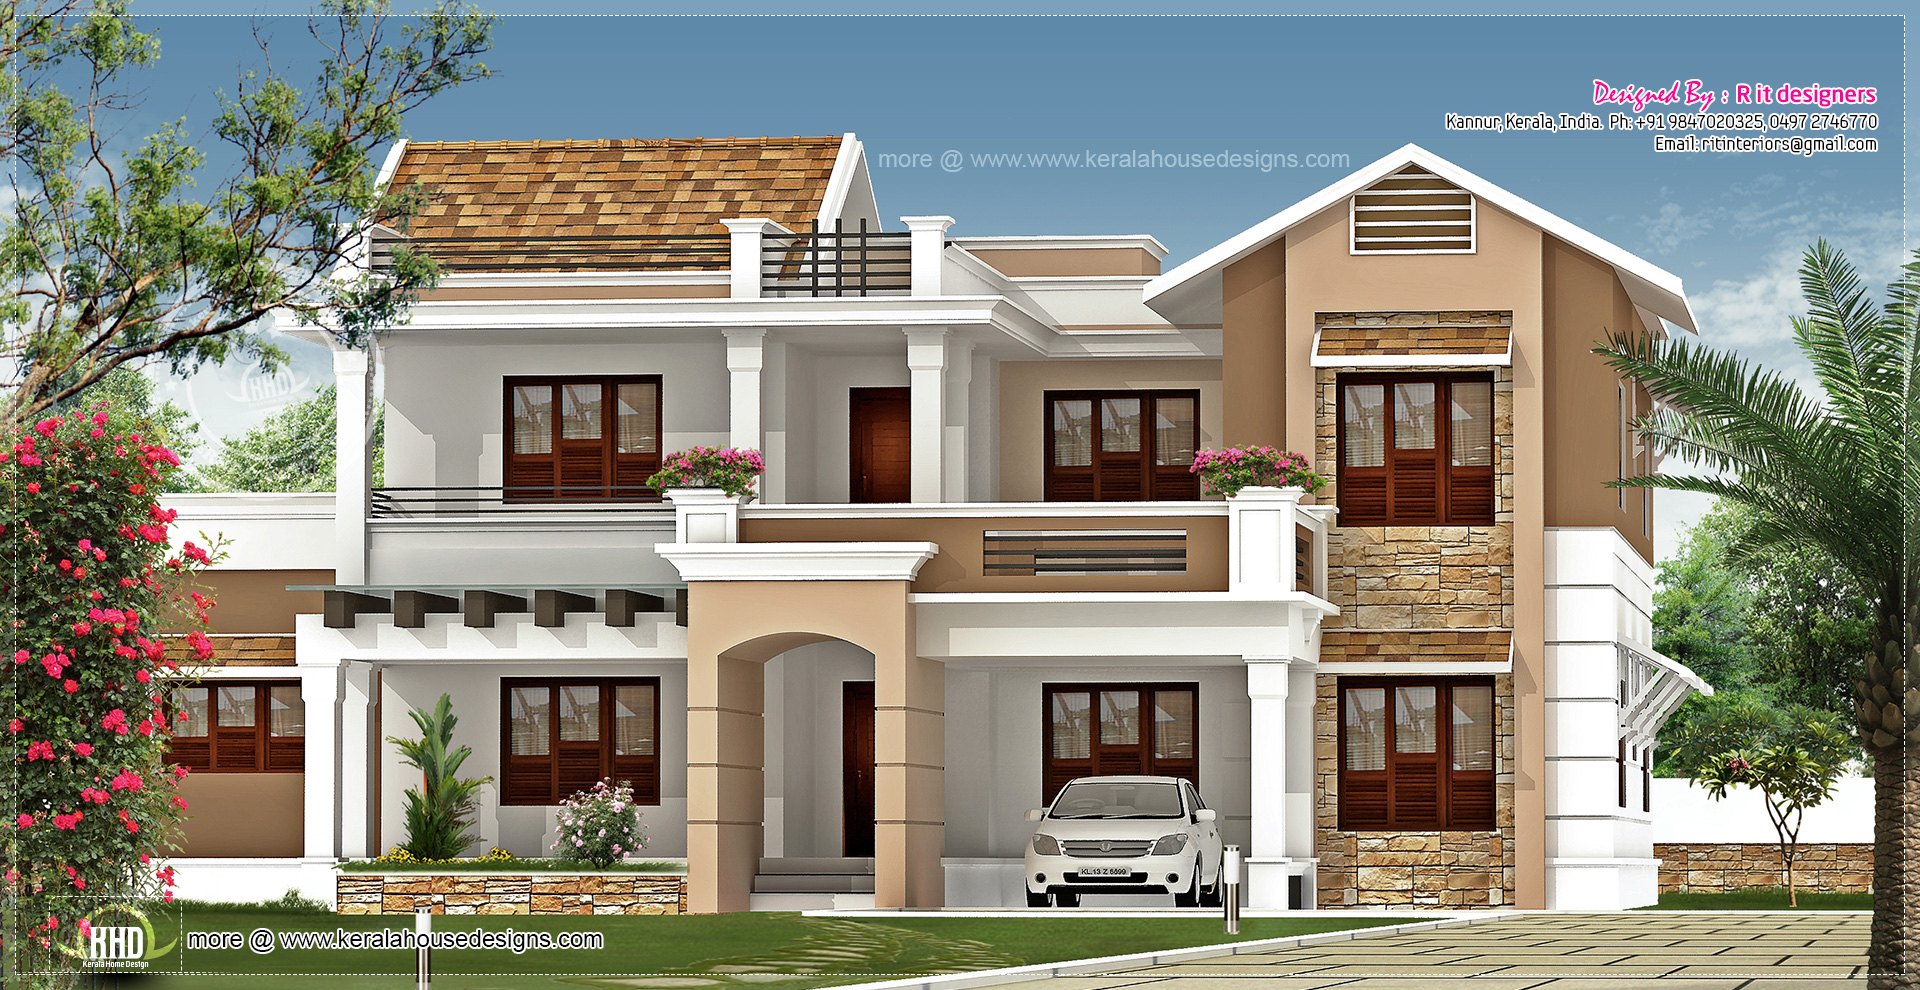 New Villa Exterior Design In 3740 Kerala Home Design And Floor Plans